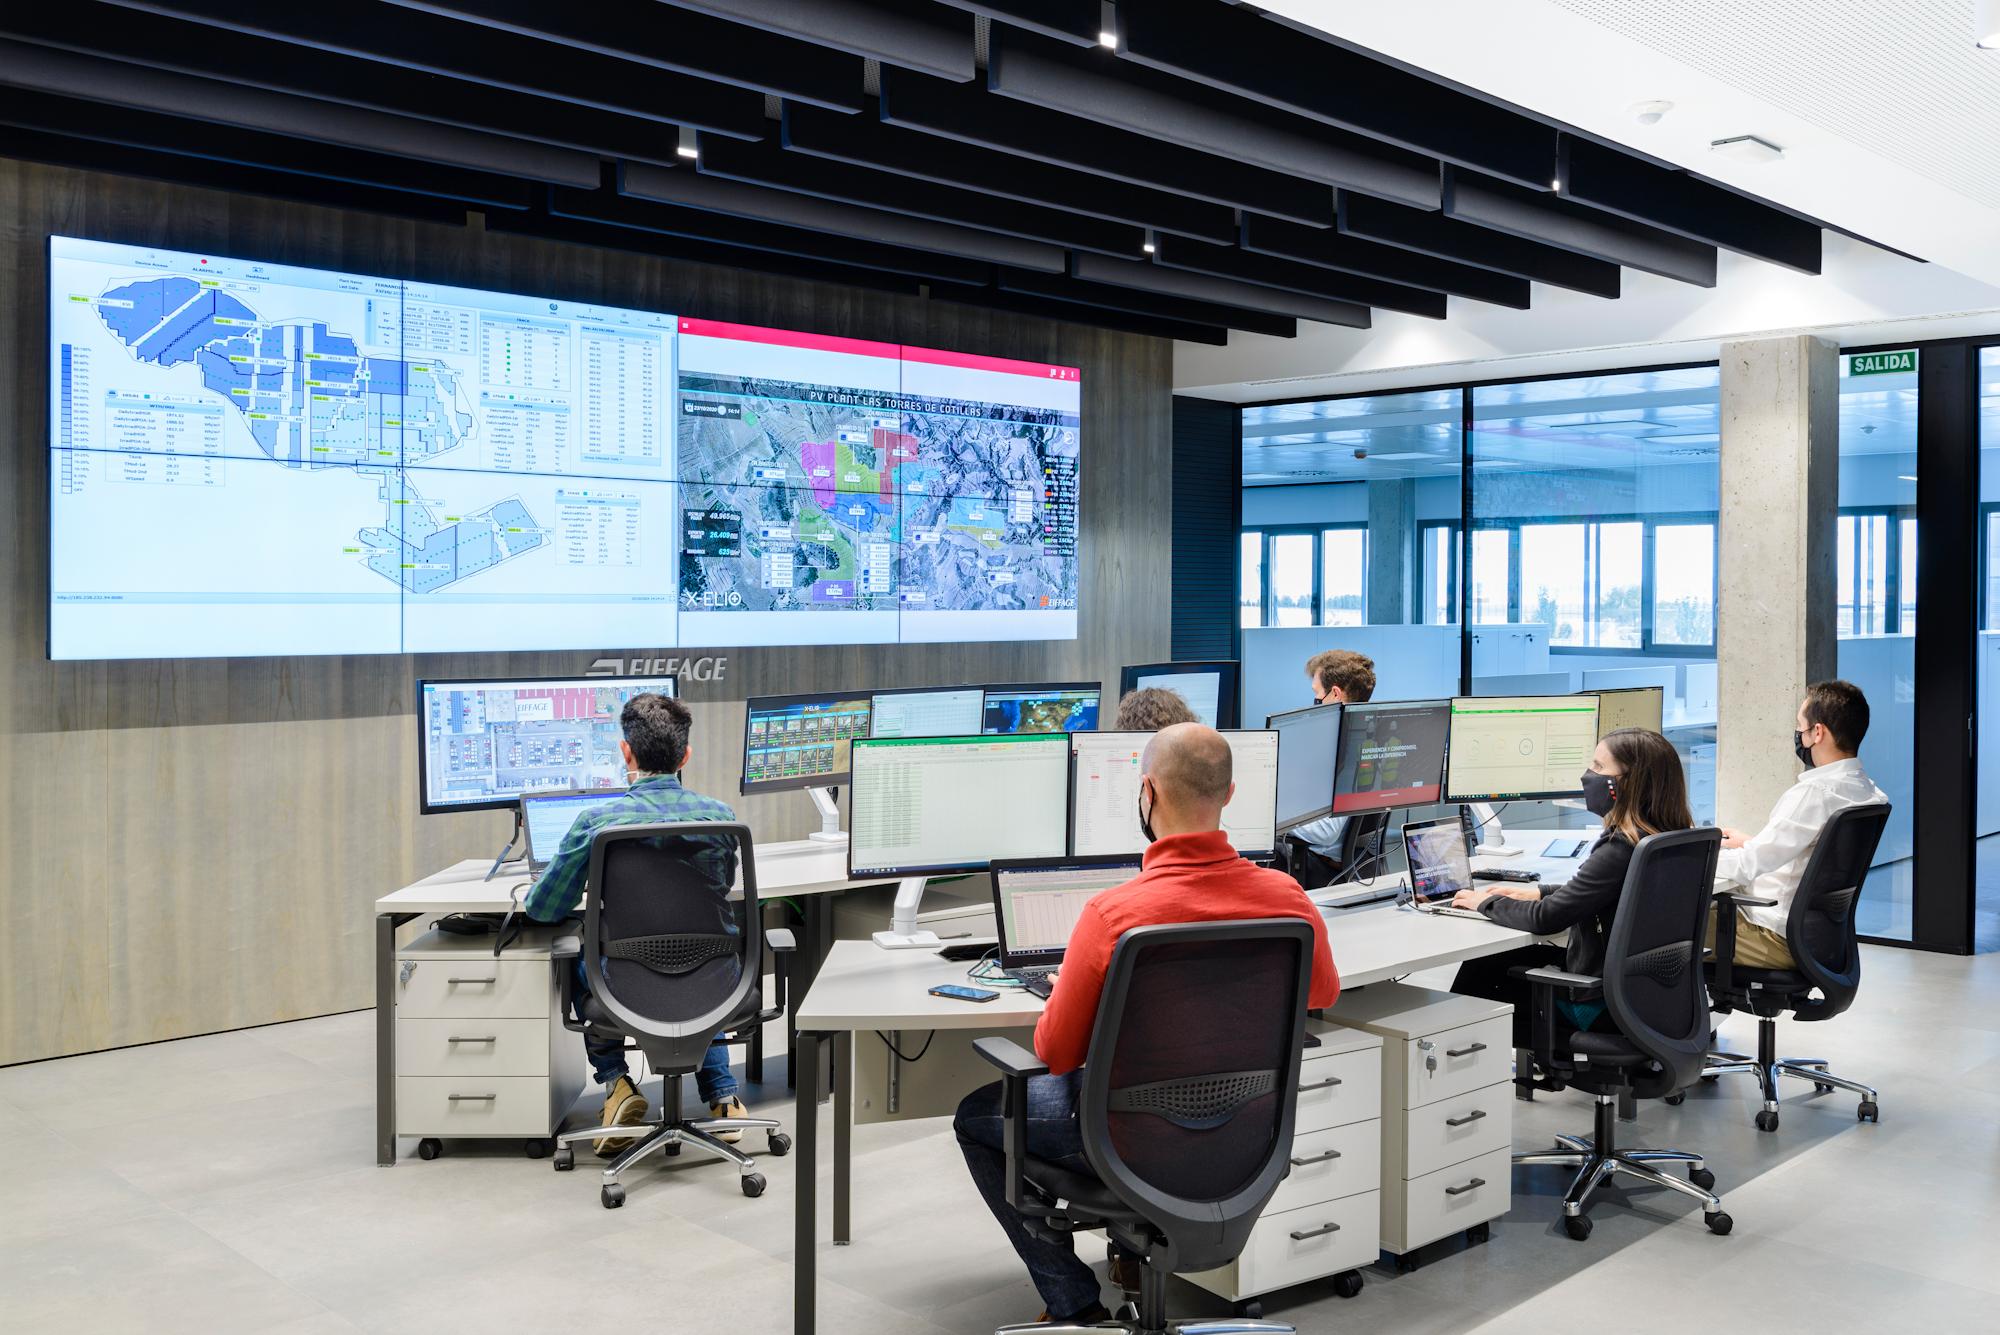 Eiffage Energía has an innovative monitoring centre where solar plants are controlled